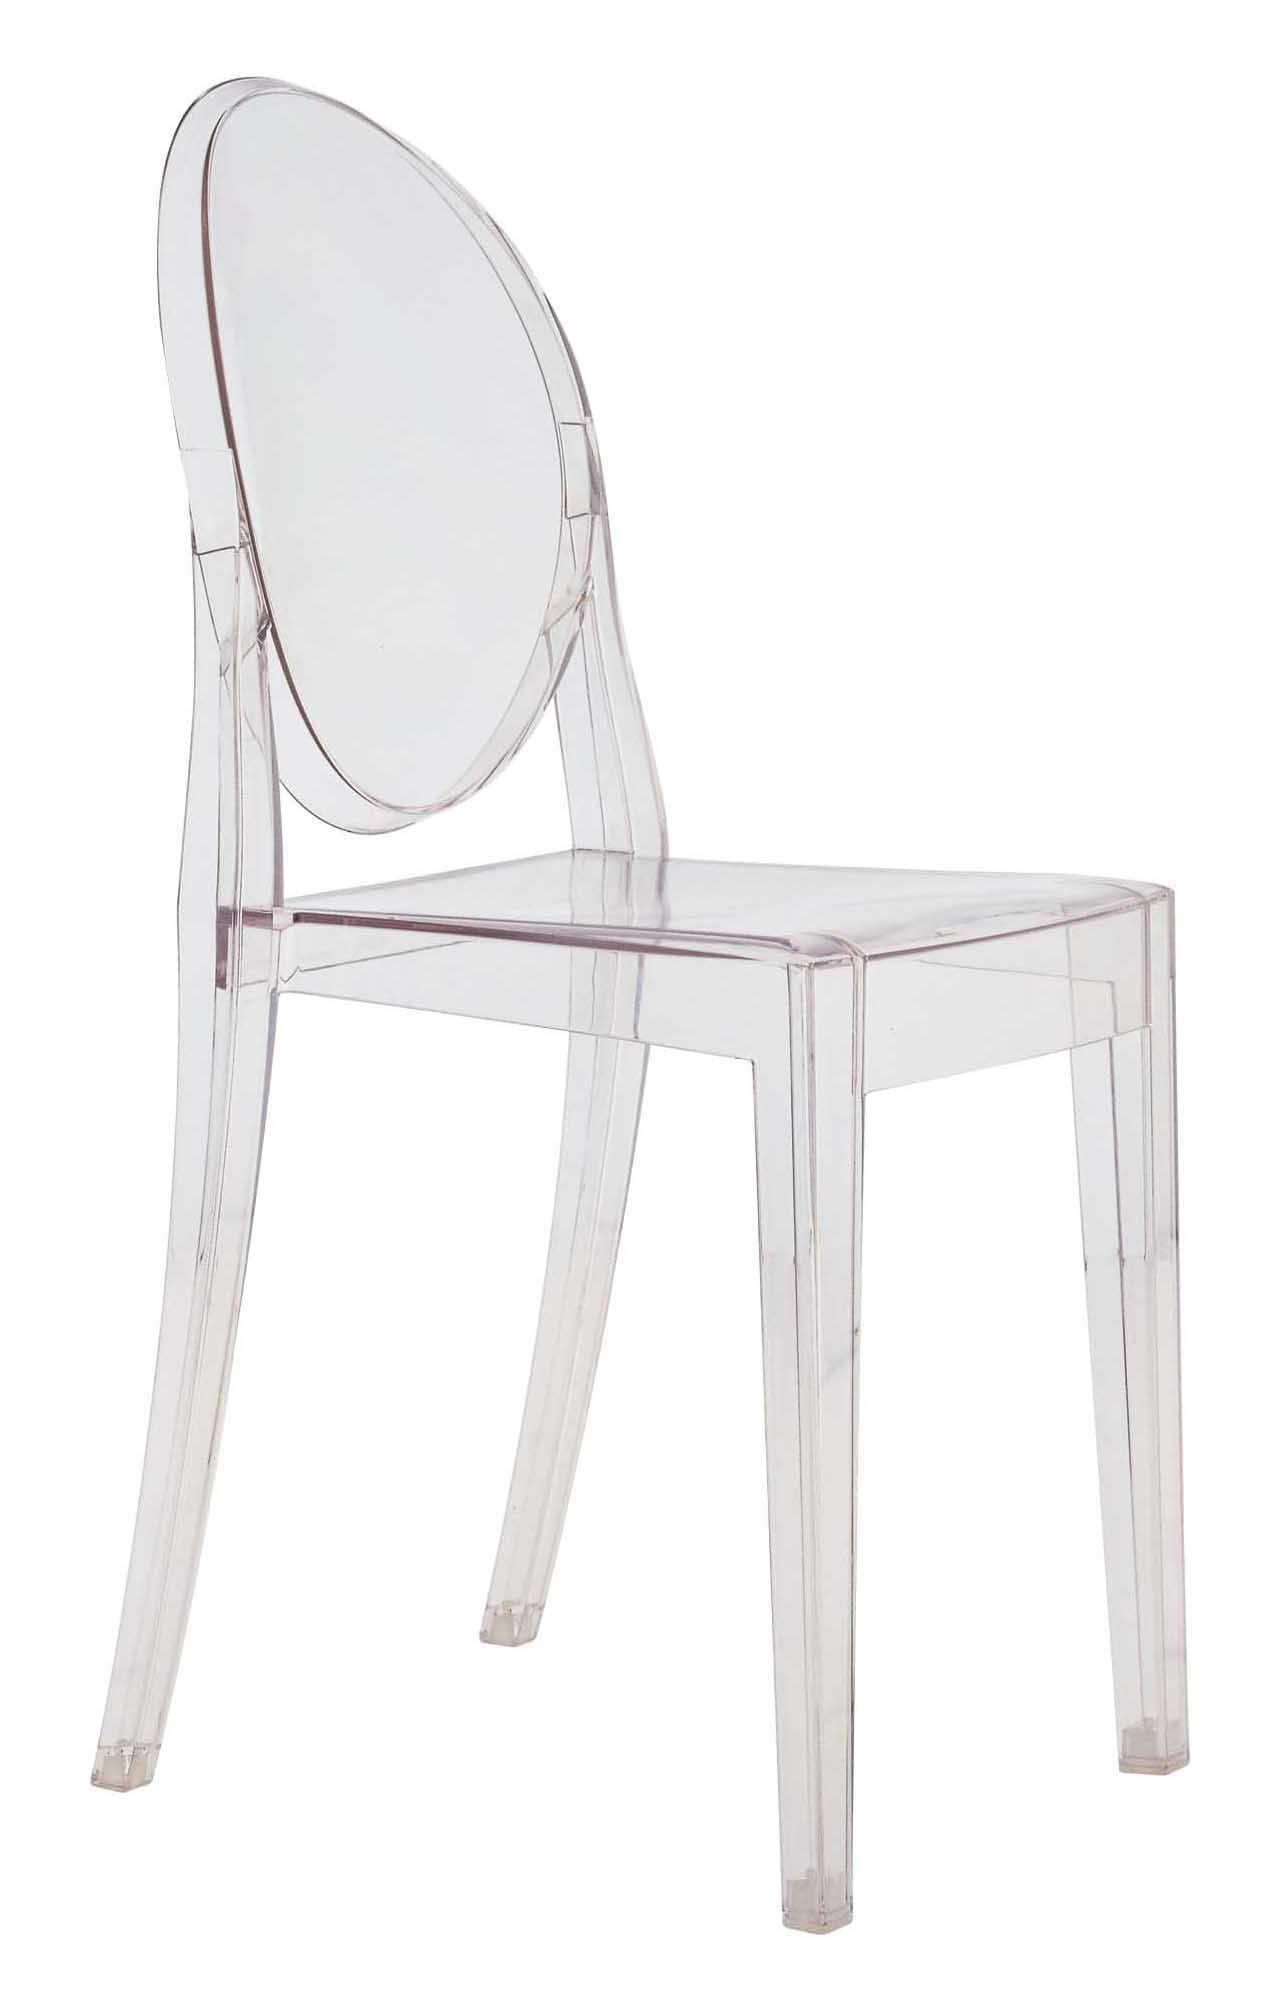 Chaise Empilable Victoria Ghost Kartell Cristal L 38 X H 90